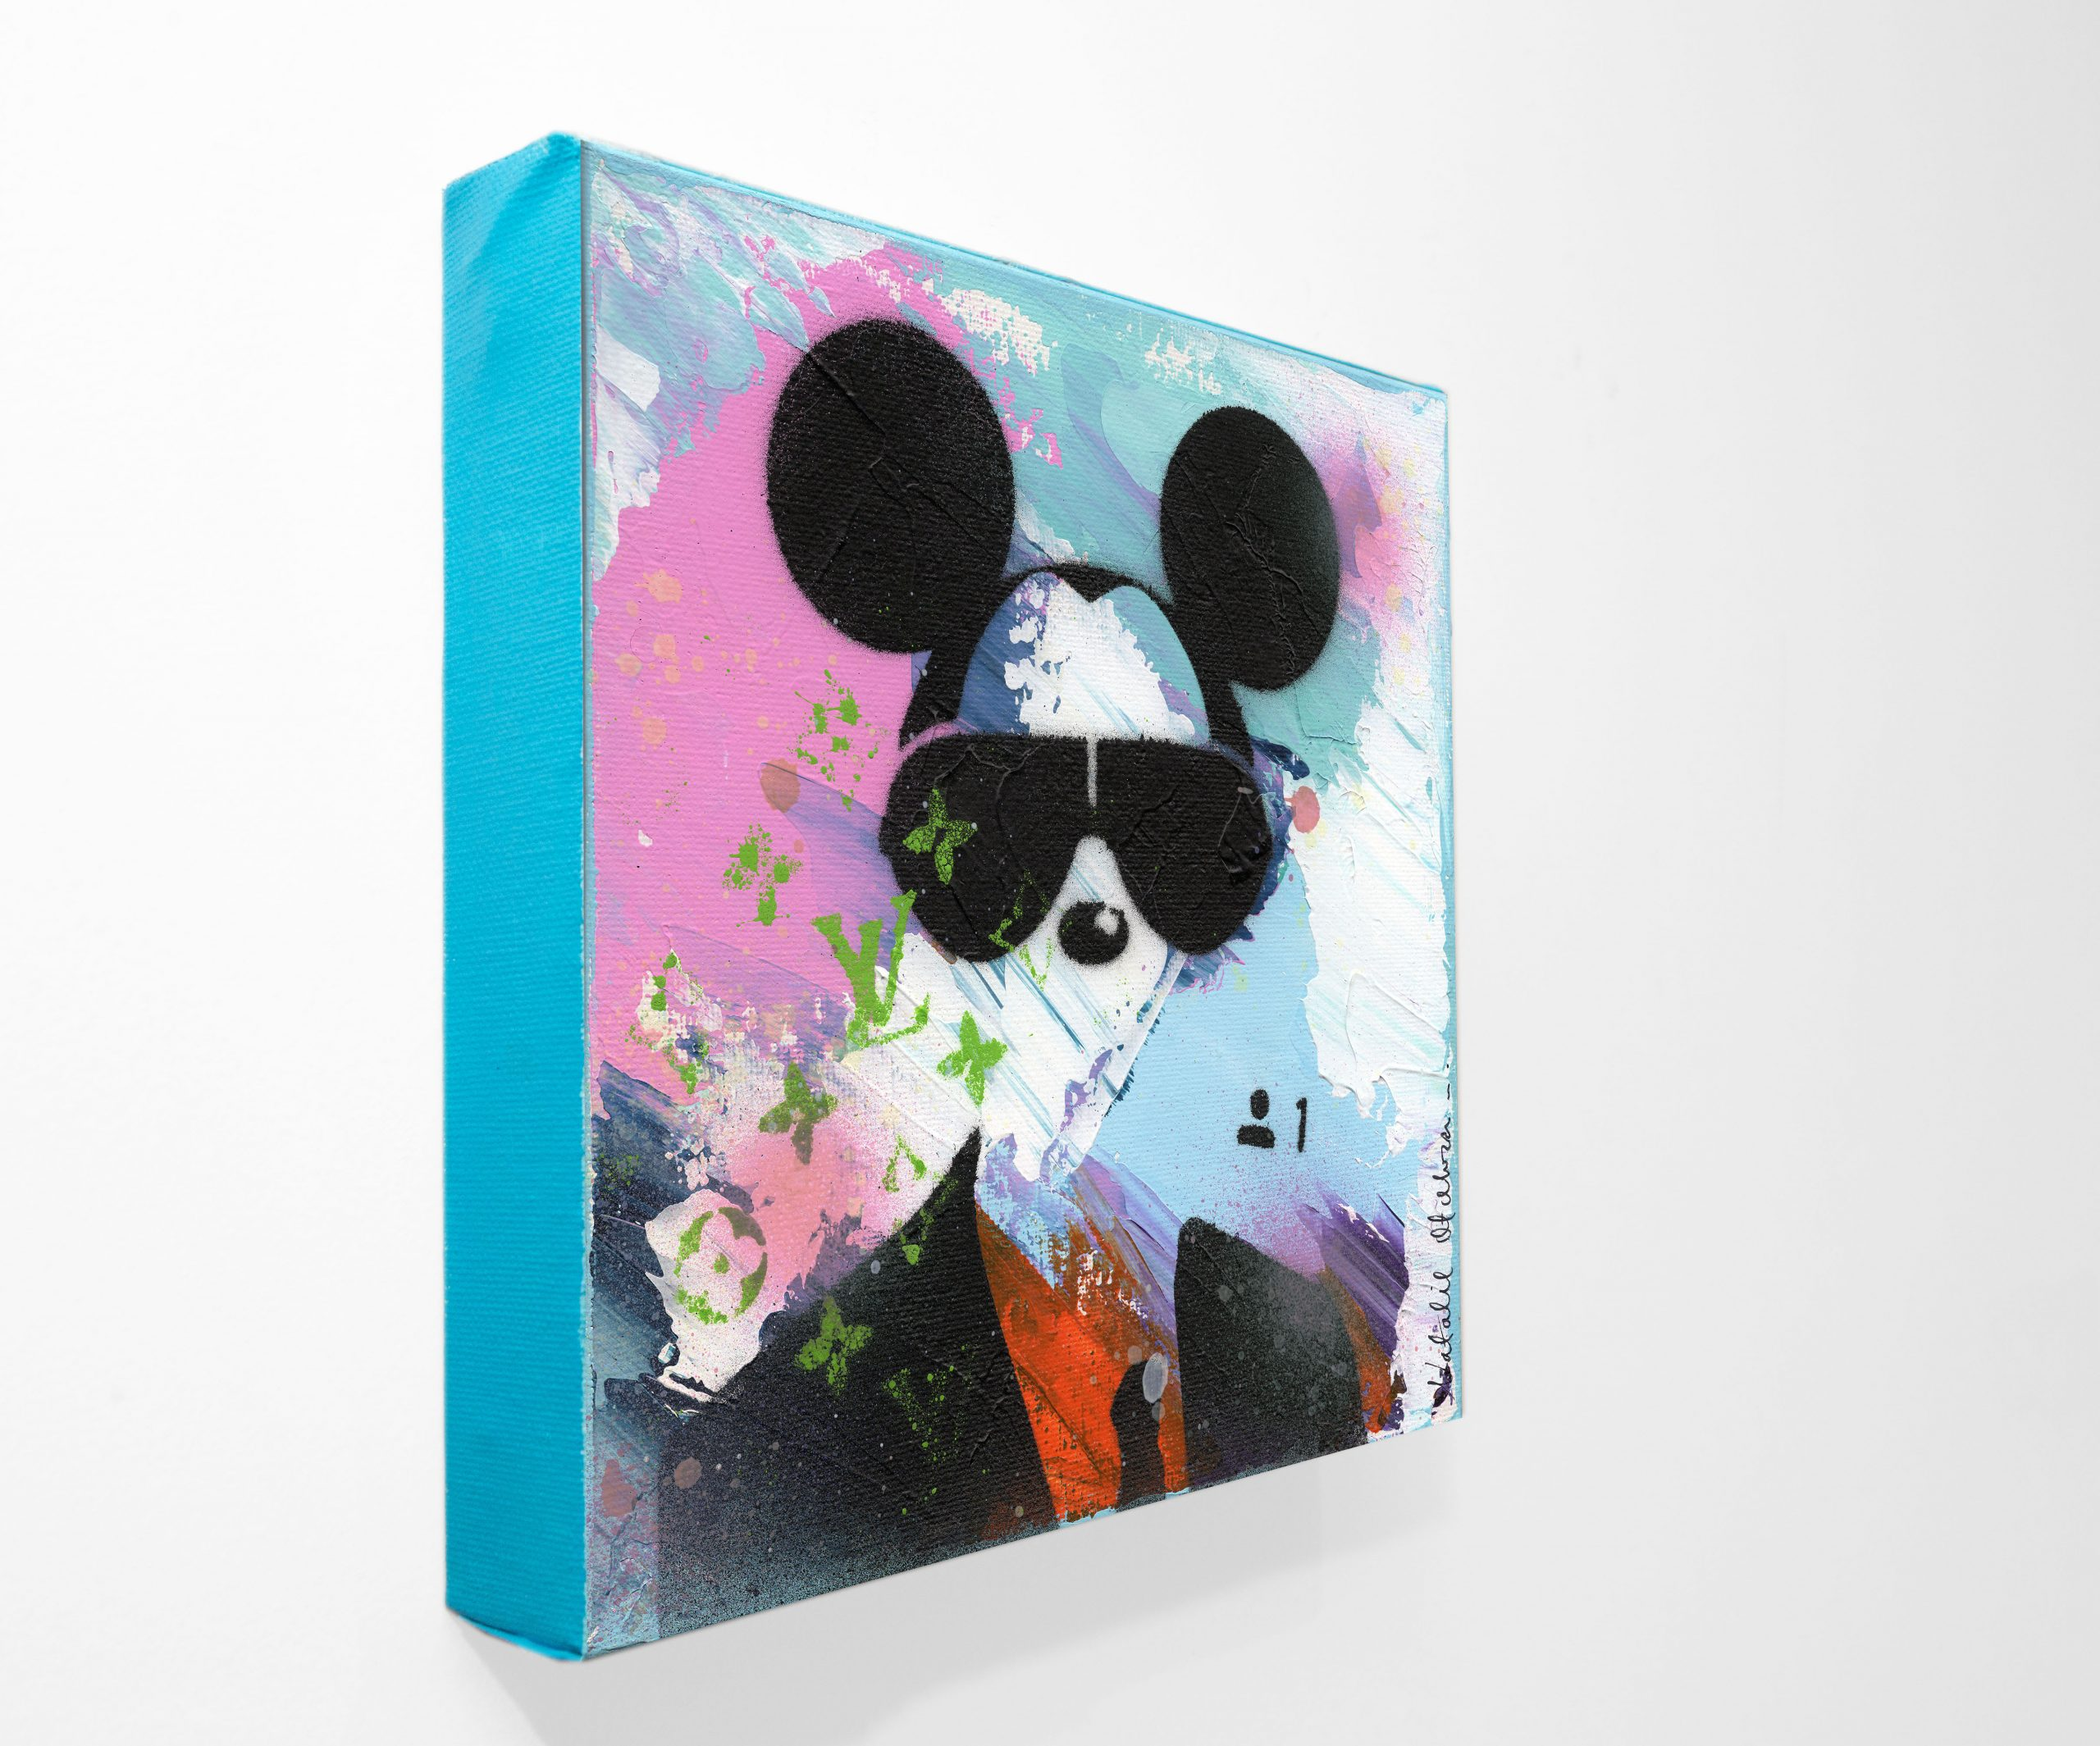 NATALIE-OTALORA-ART-GRAFFITI-MICKEY WANTS TO BE YOUR FRIEND-PERSPECTIVE